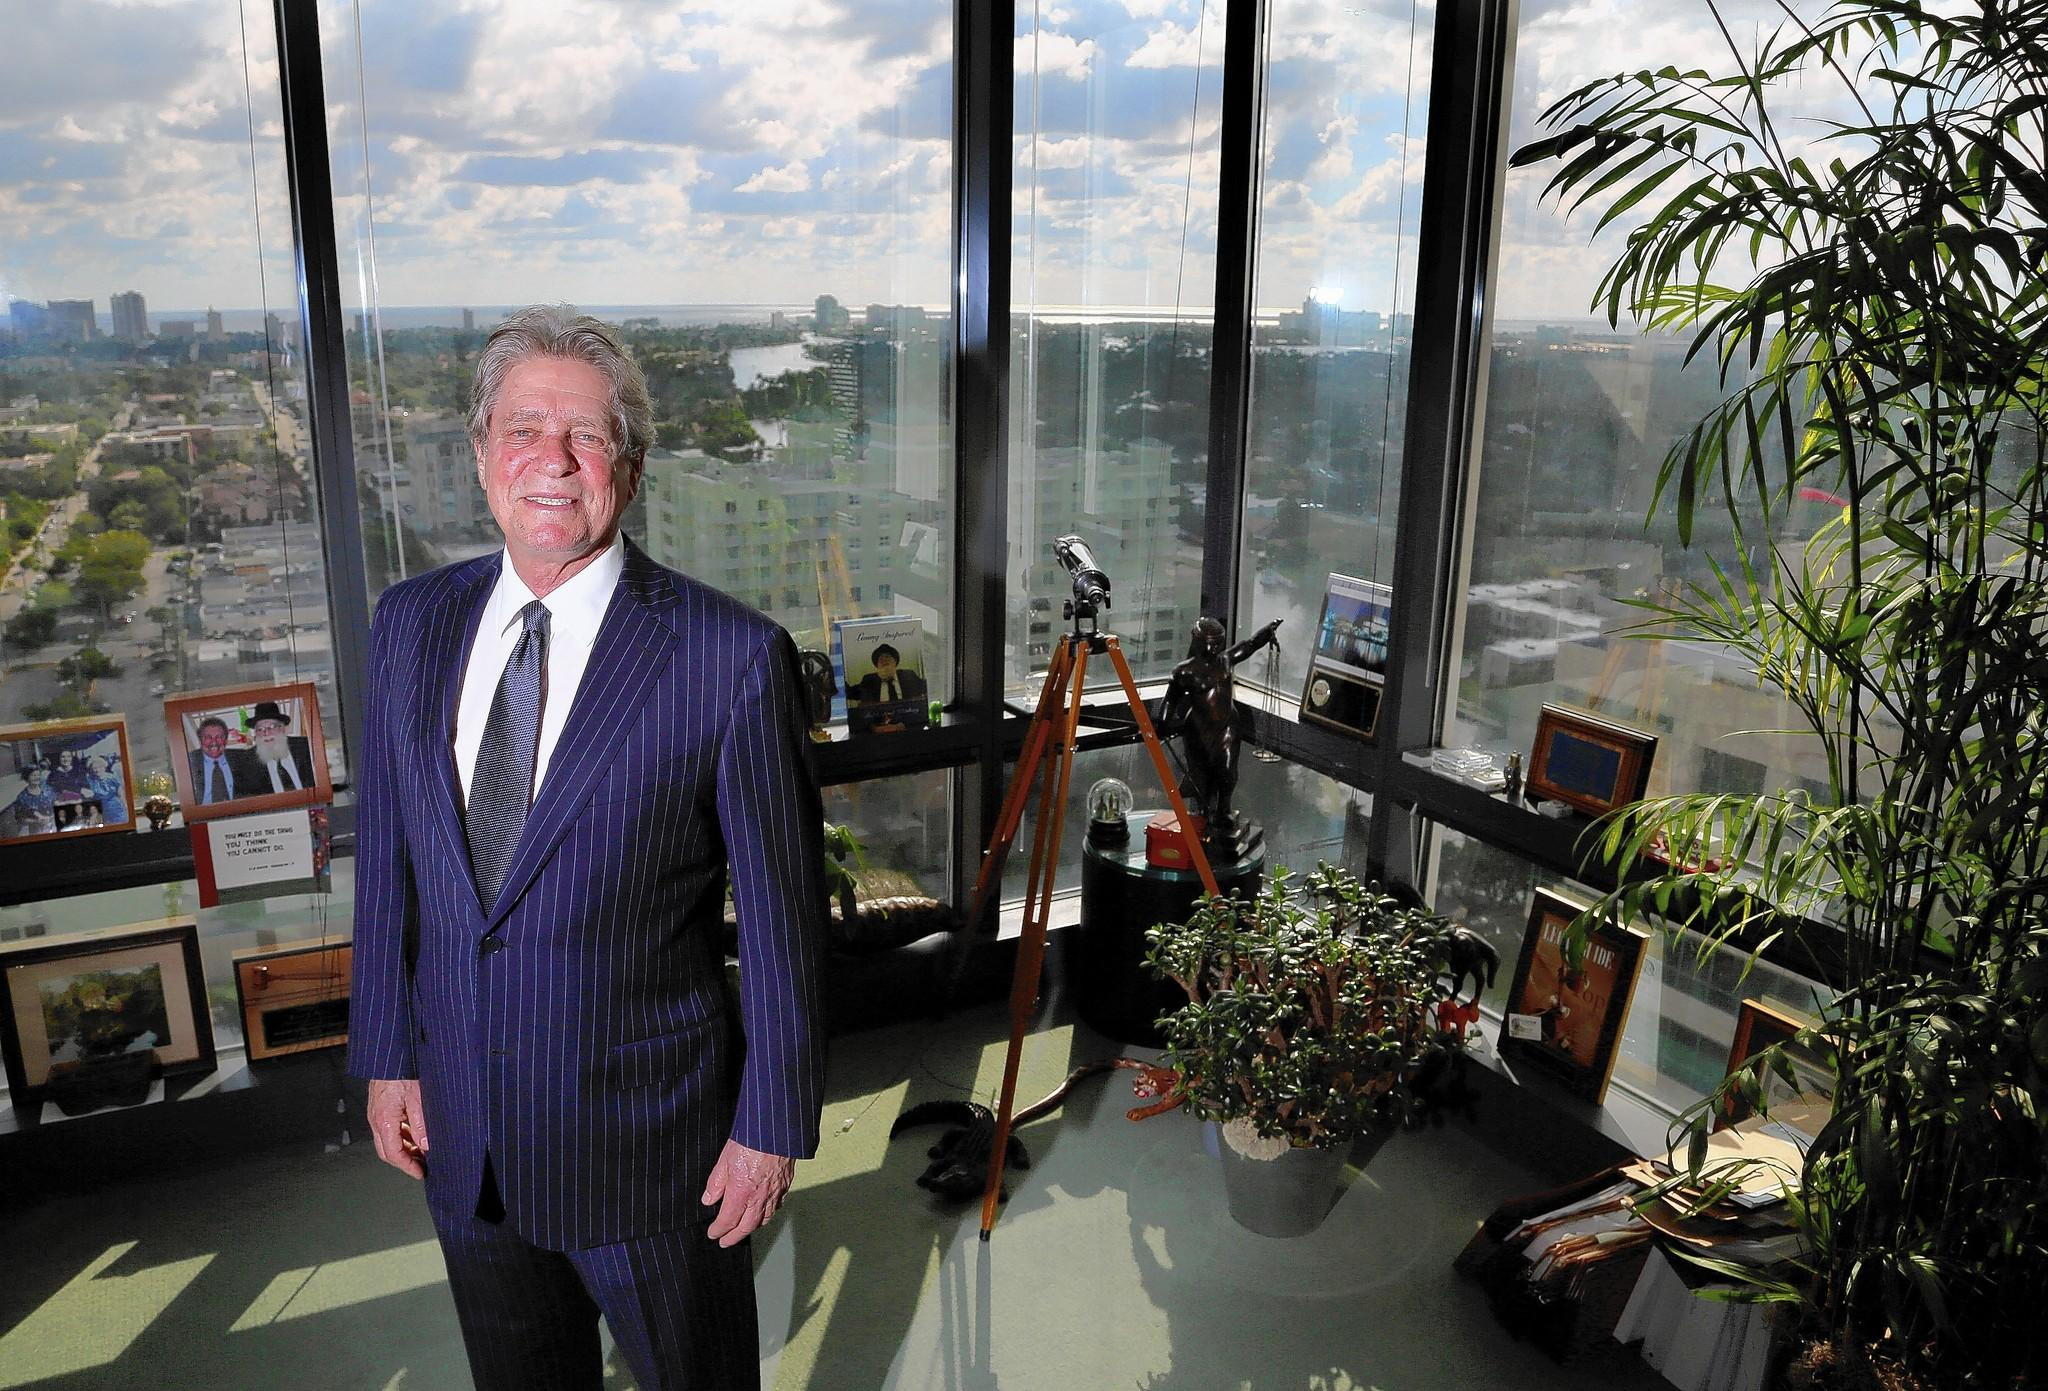 Brian Sherr, of the real estate law firm Greenberg Traurig, started First Southern Bank in Boca Raton a quarter century ago.